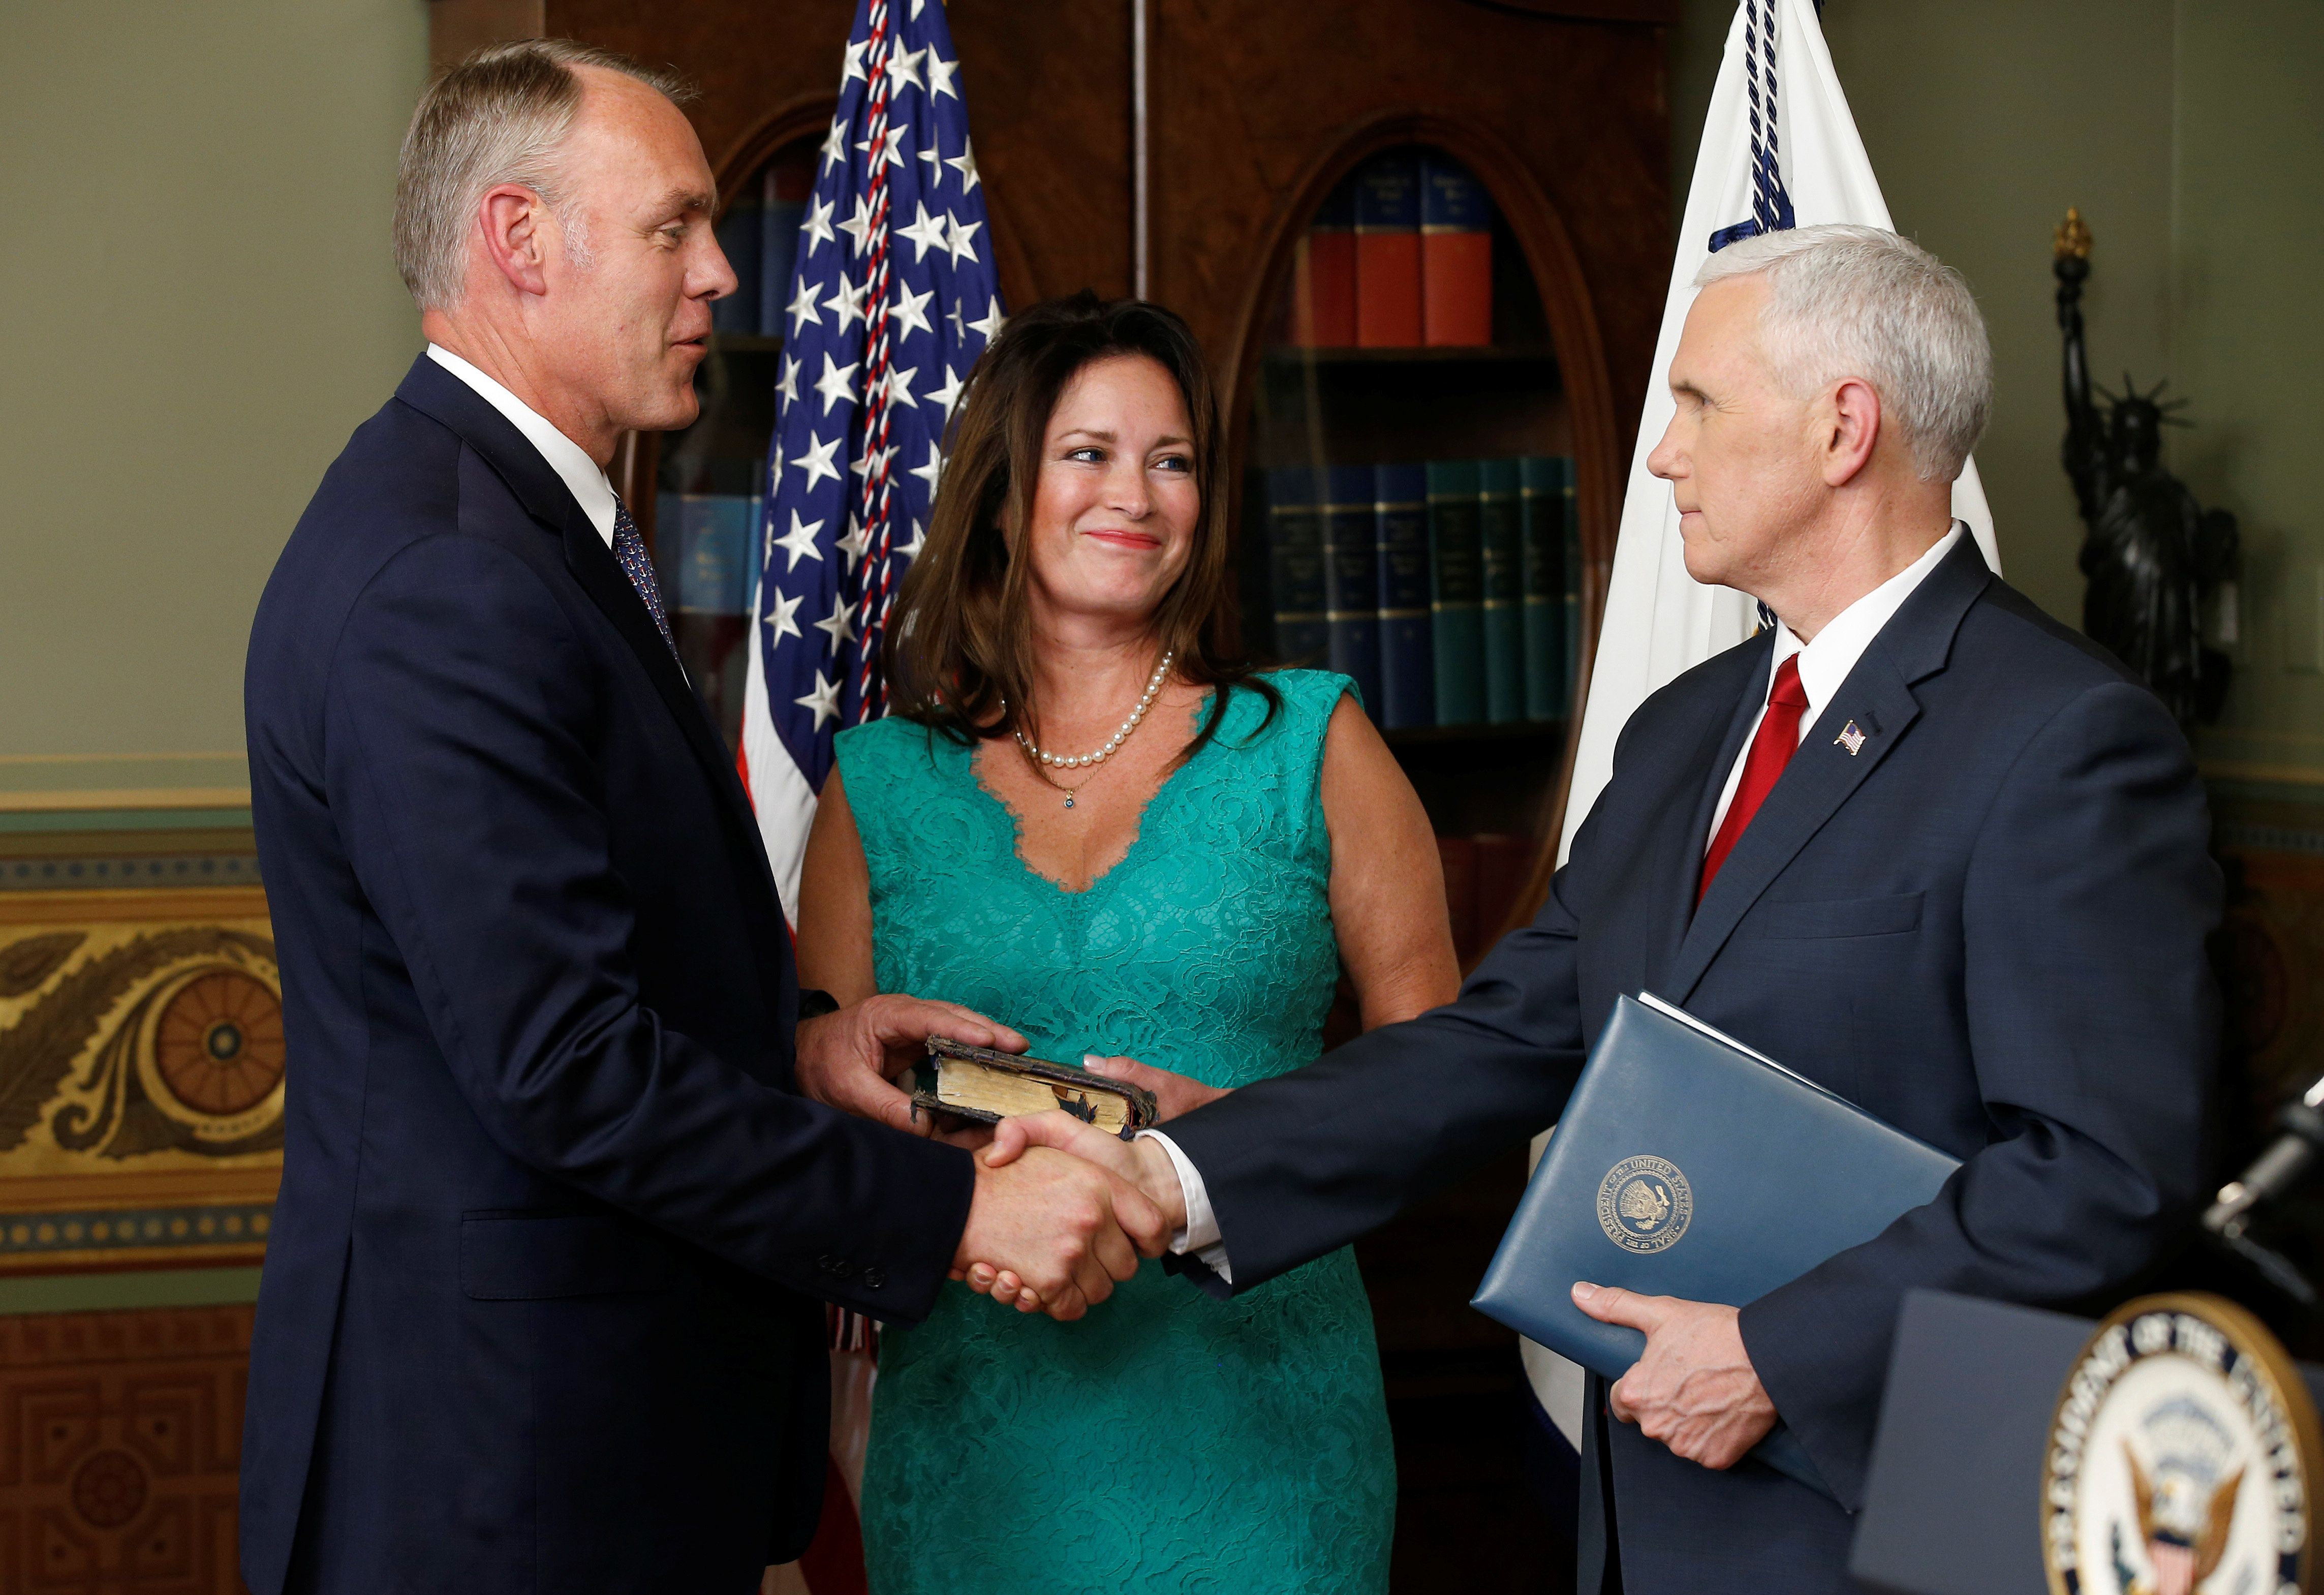 U.S. Vice President Mike Pence shakes hands with Ryan Zinke after Zinke was sworn in to be Secretary of the Interior as Zinke's wife Lolita watches, in Washington, U.S., March 1, 2017. REUTERS/Joshua Roberts